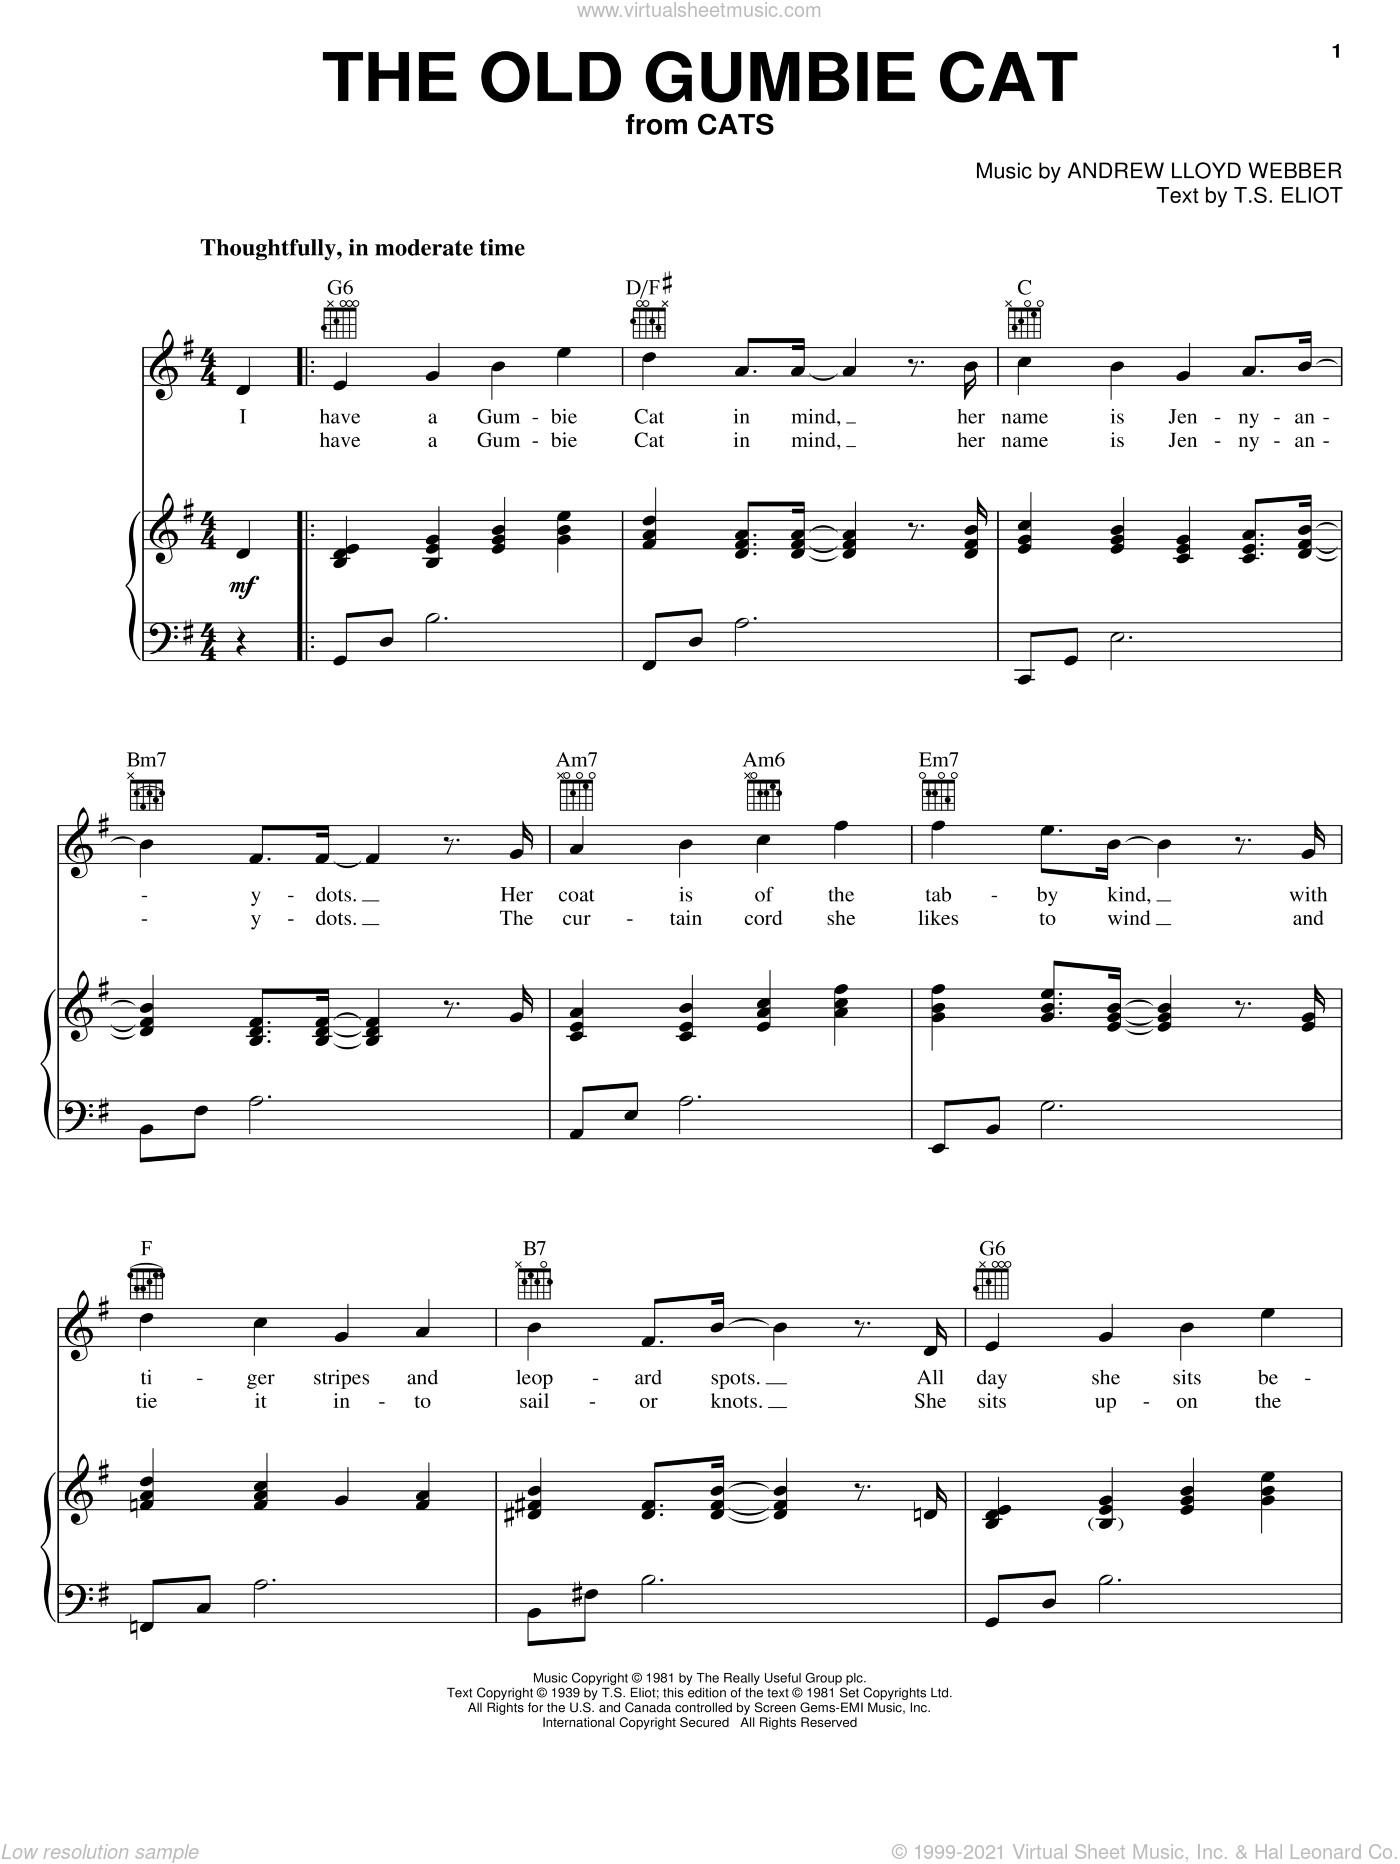 The Old Gumbie Cat sheet music for voice, piano or guitar by T.S. Eliot and Andrew Lloyd Webber. Score Image Preview.